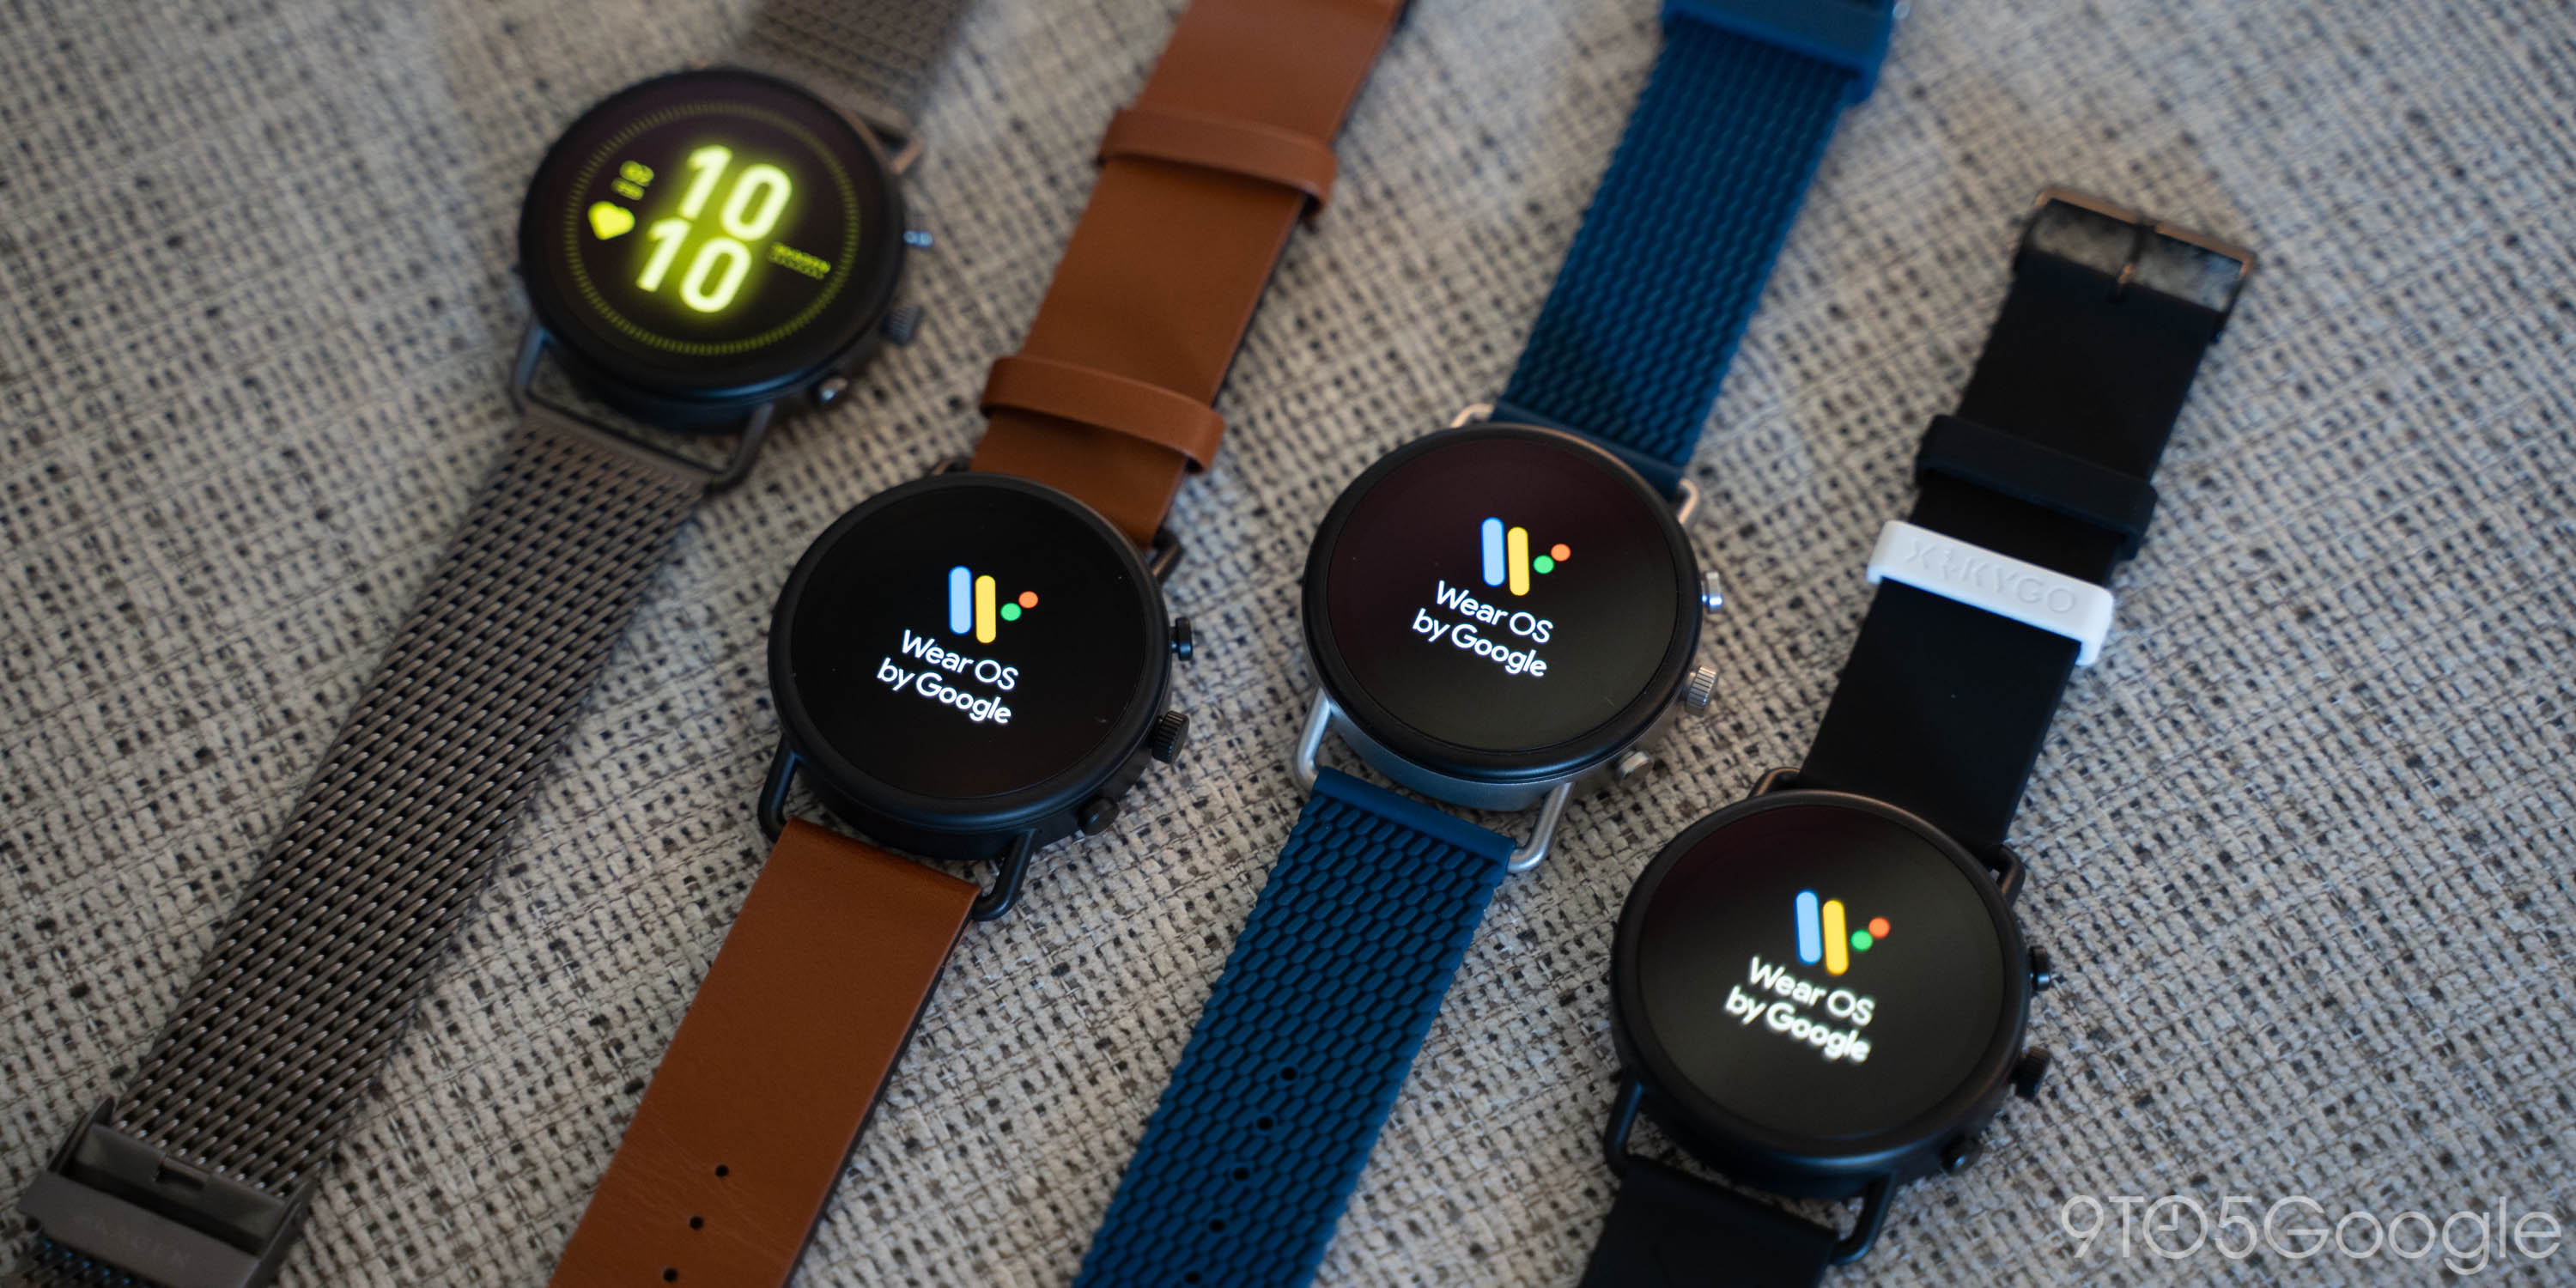 skagen falster 3 wear os smartwatch android